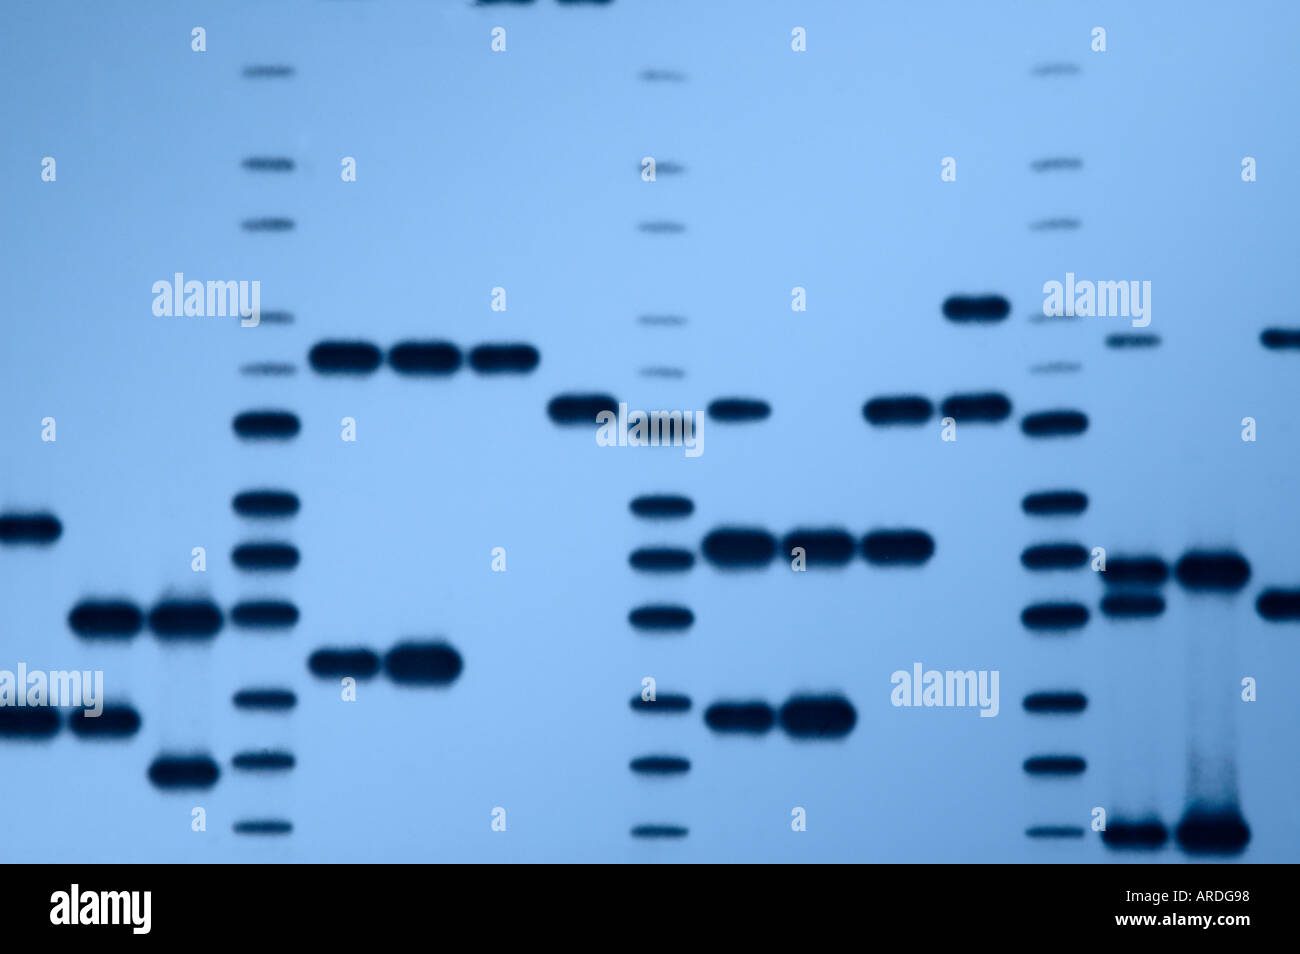 Autoradiograph 'DNA fingerprints' of a variety of DNA samples. - Stock Image